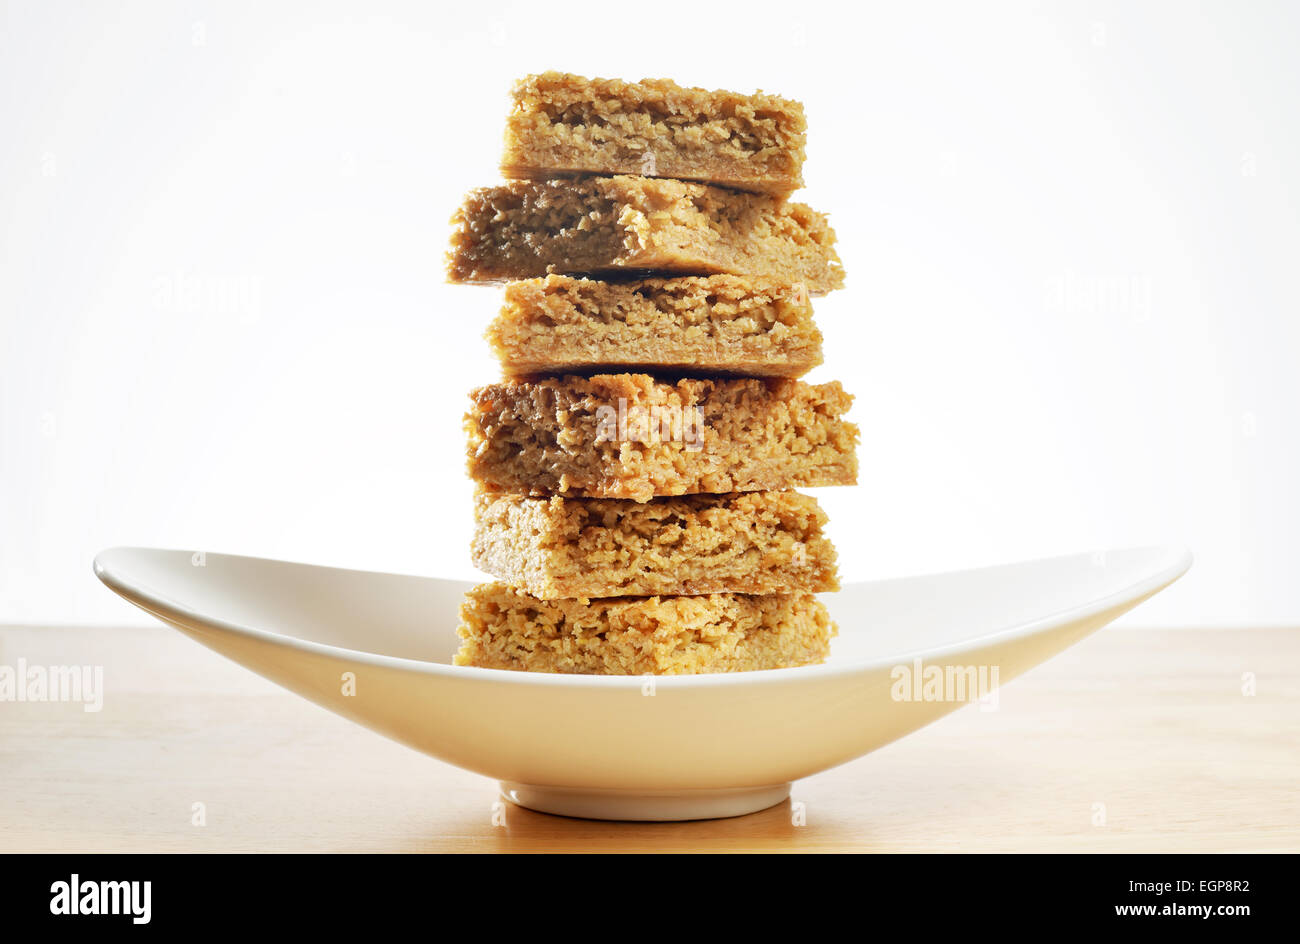 Gluten free home made flapjack served on a curved dish - Stock Image